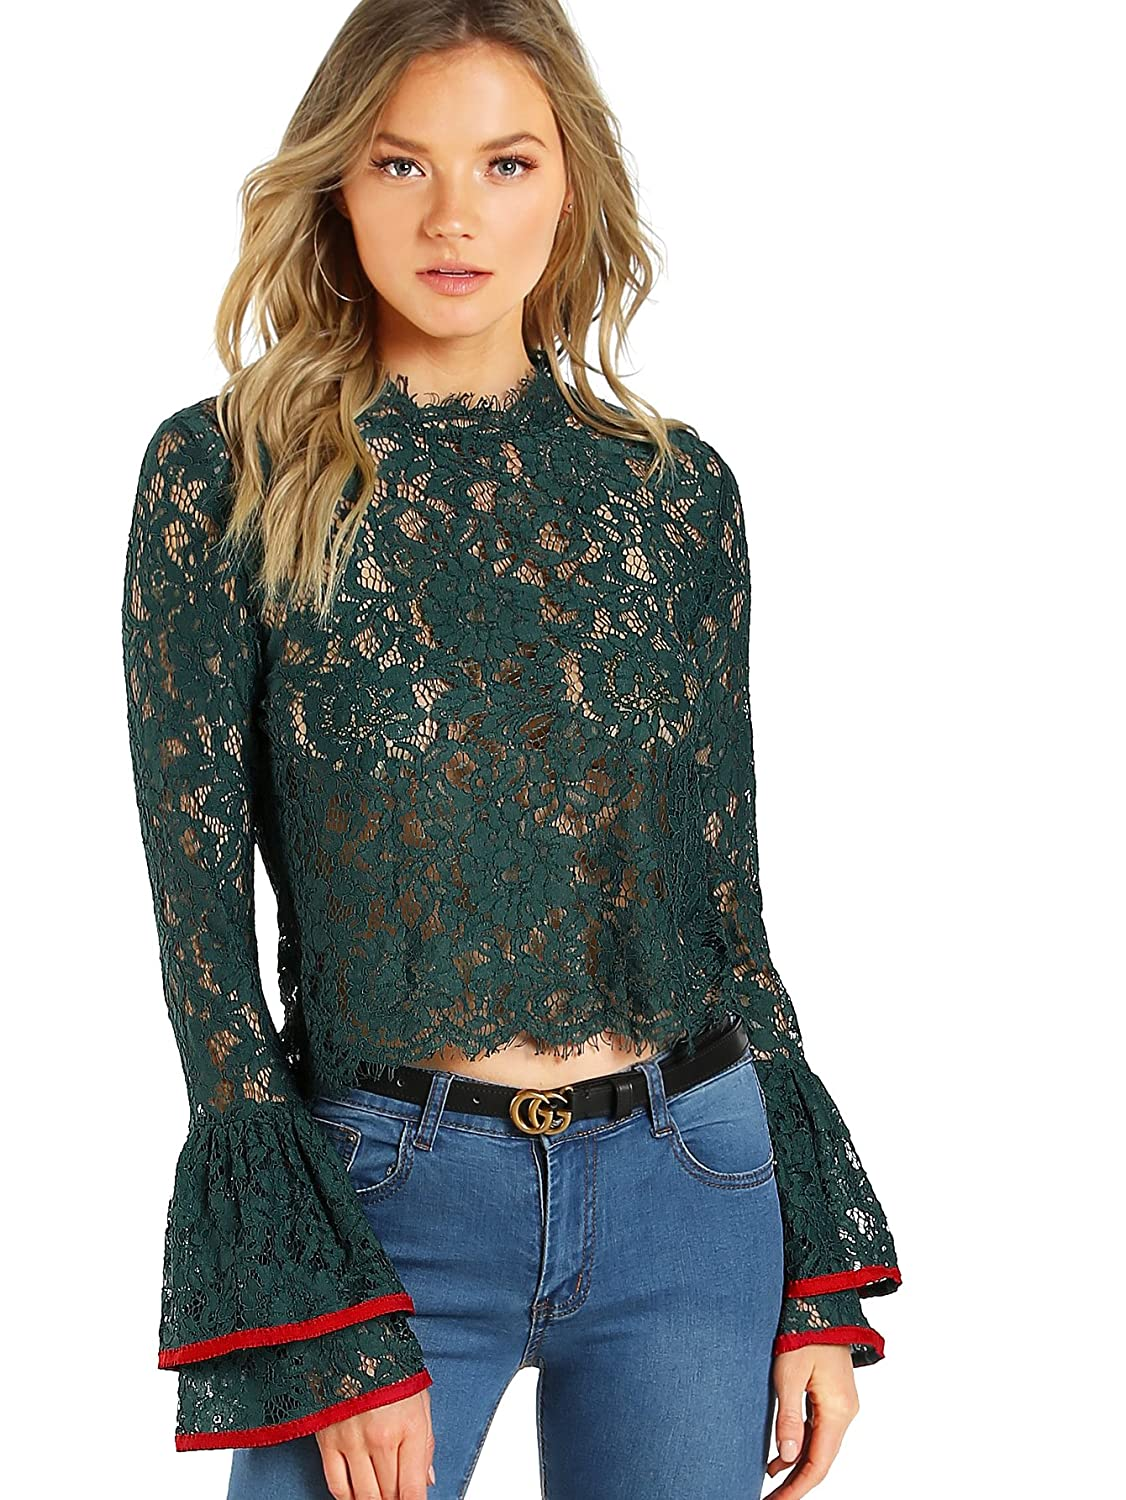 Floerns Women's Bell Sleeve See Through Sheer Lace Blouse Crop Top